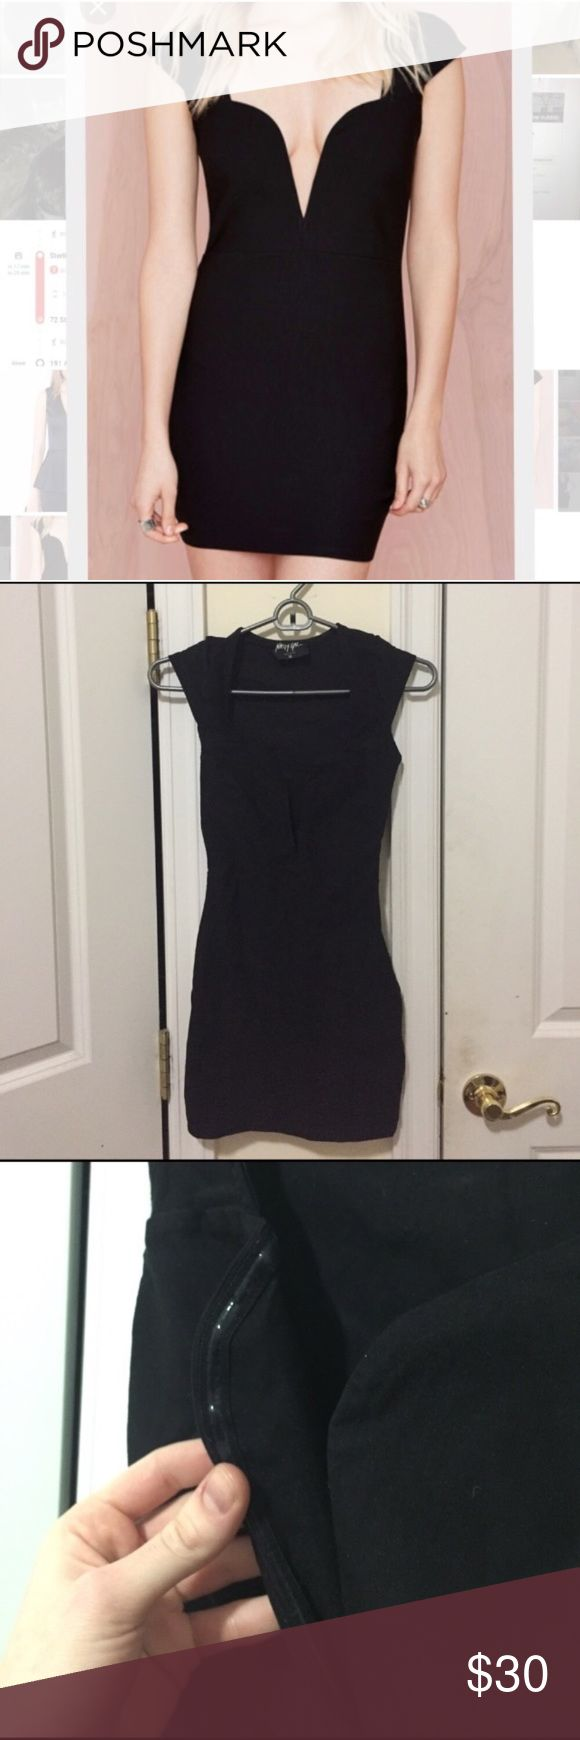 nastygal sexy little black dress this dress has been worn once and is in good condition. dress has those shiny little things by the breast area so there are no wardrobe malfunctions. 😹😜 zips up on the side. Nasty Gal Dresses Mini